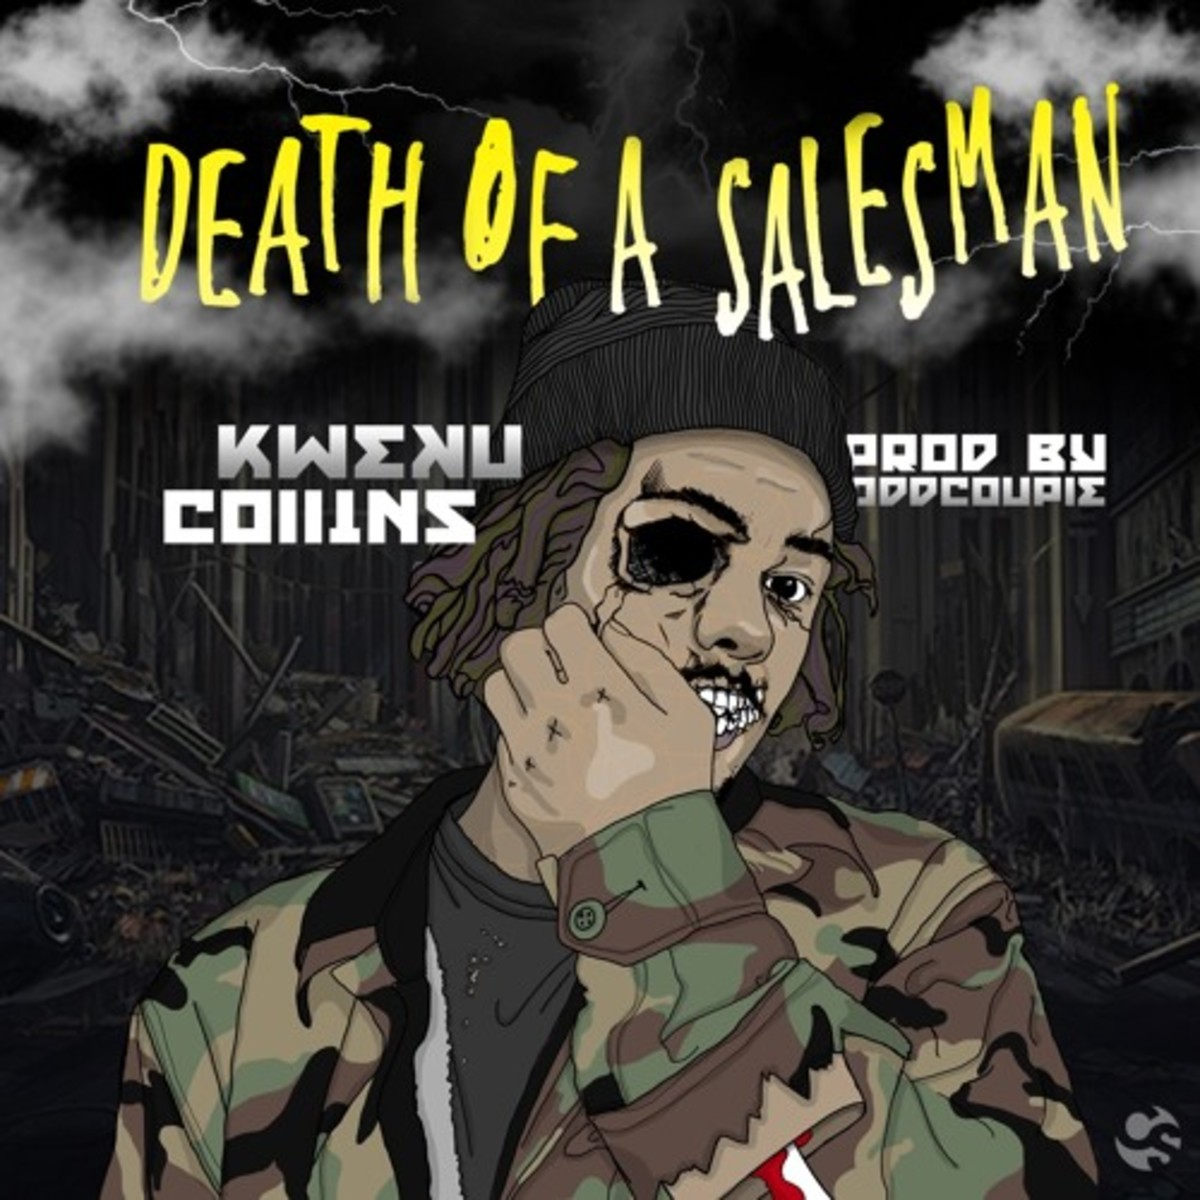 kweku-collins-death-of-a-salesman.jpg